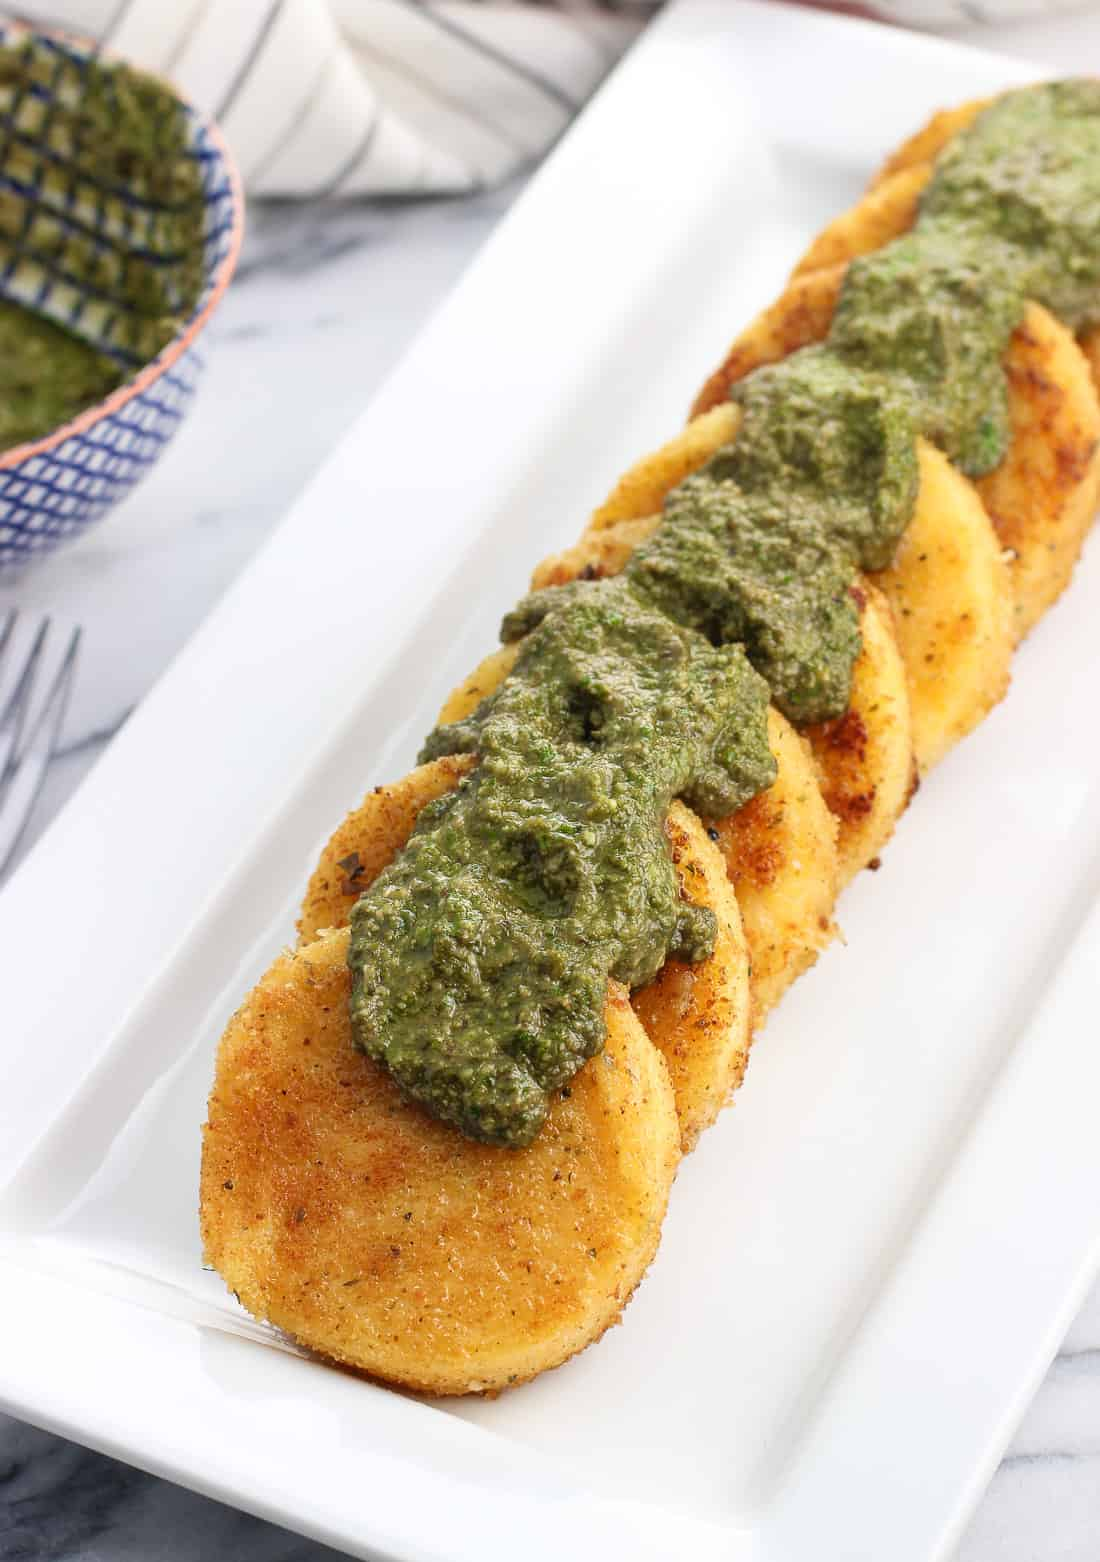 Pan fried tubed polenta slices arranged in a row on a serving tray topped with basil pesto dollops